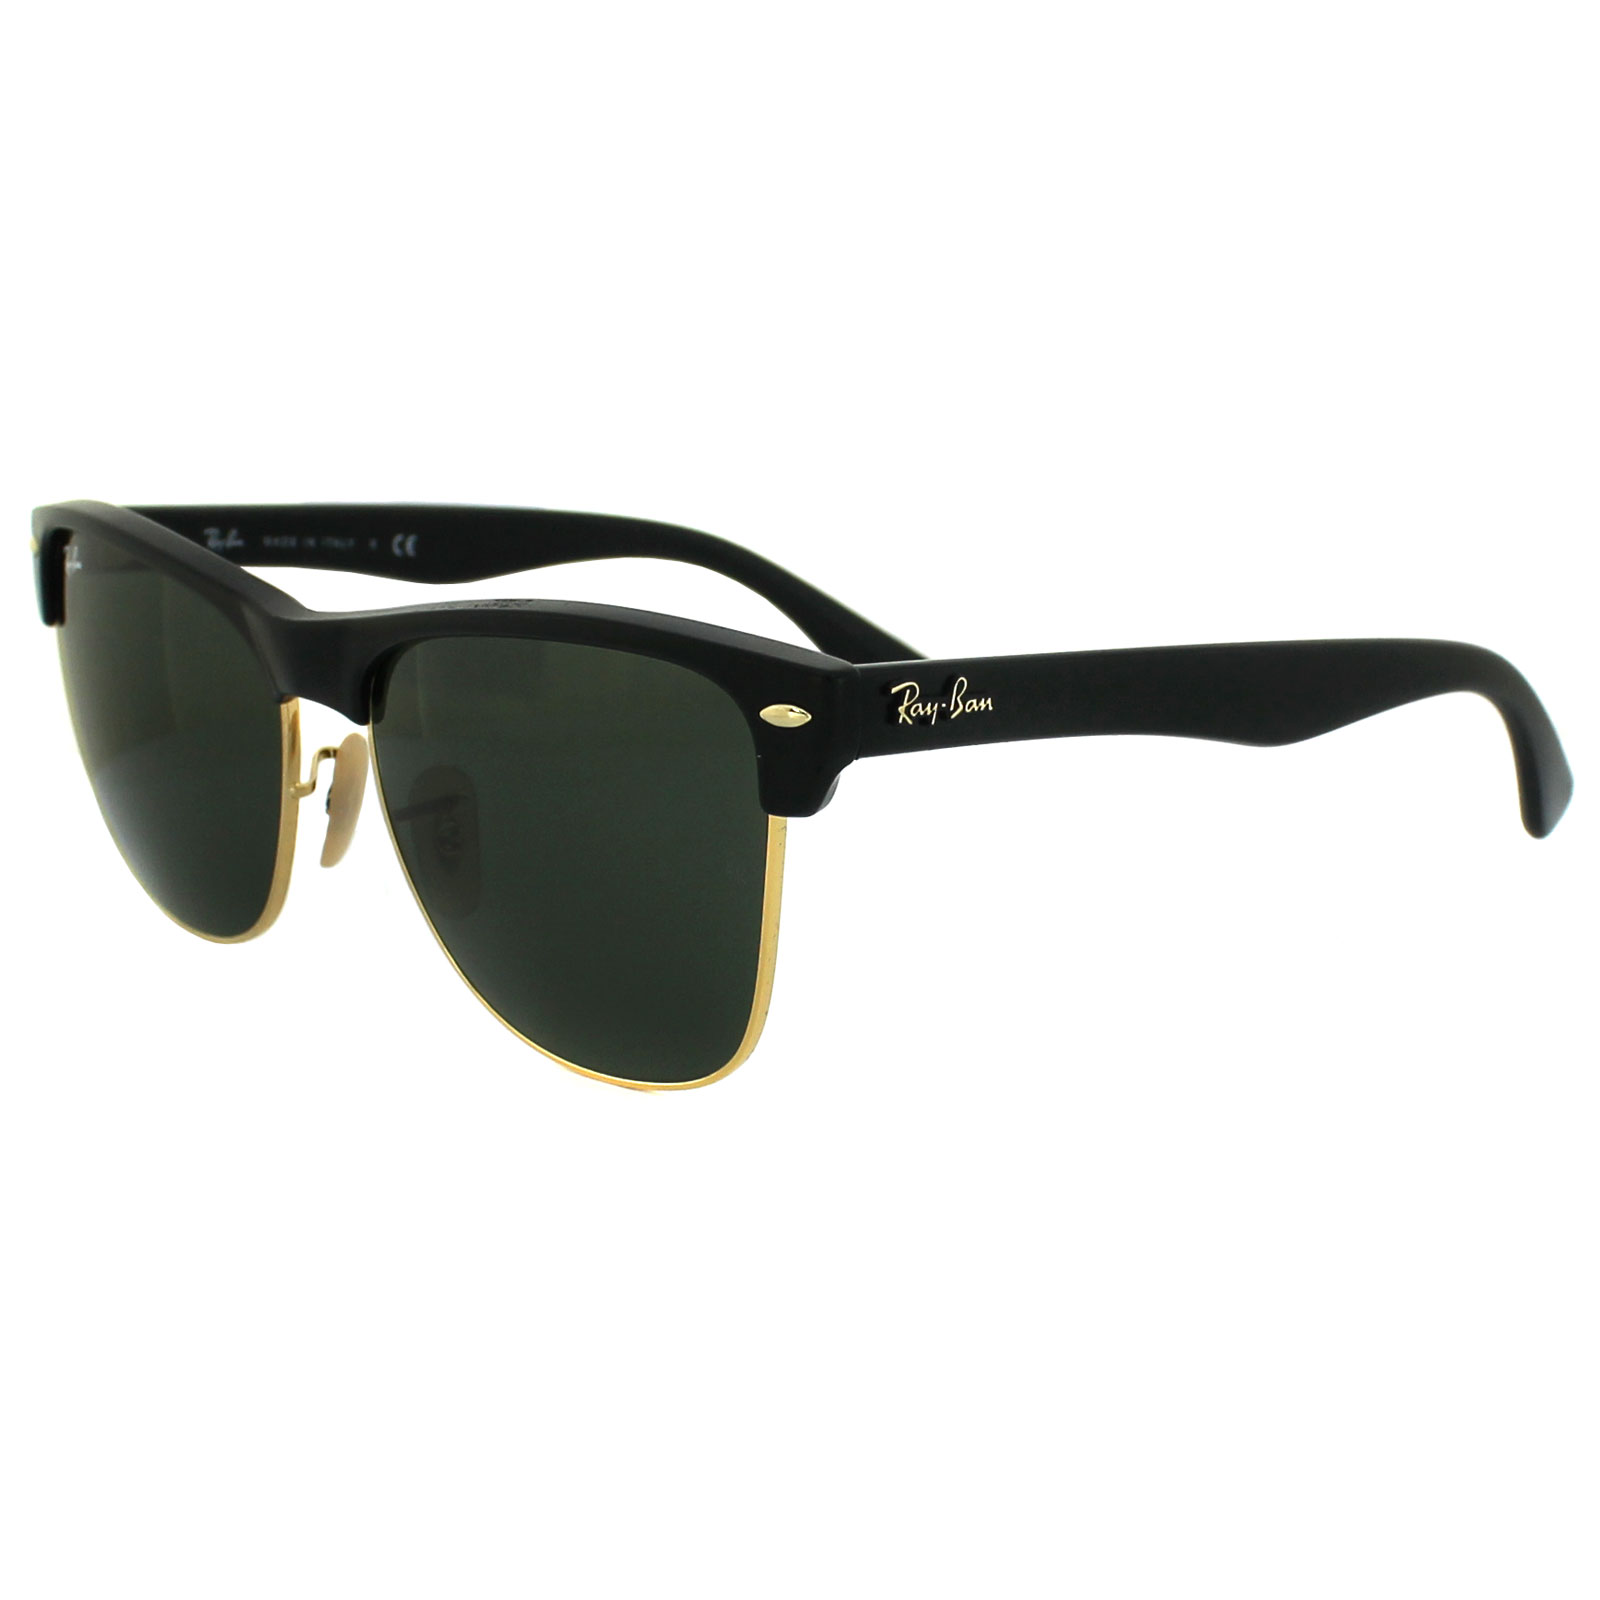 e3ce42be69aa6 Cheap Ray-Ban 4175 Sunglasses - Discounted Sunglasses